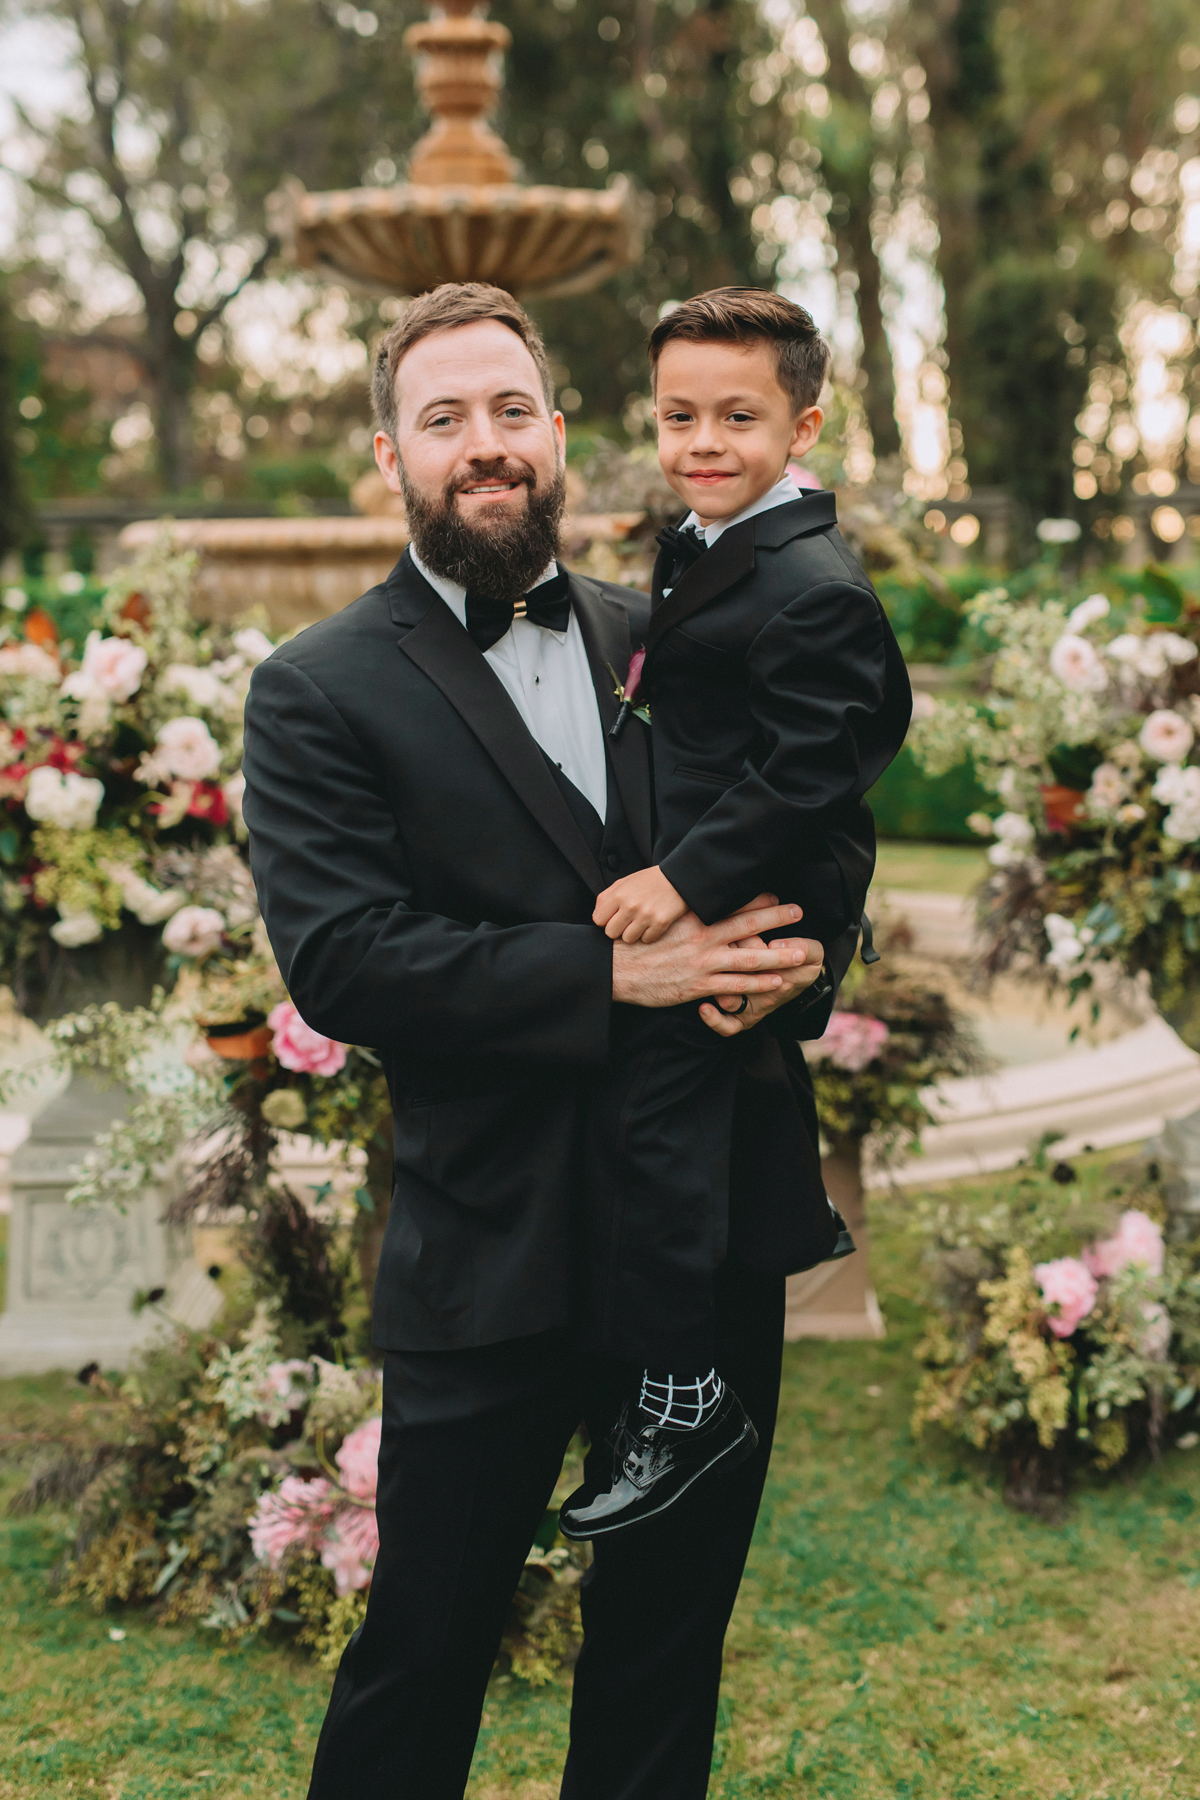 Breathtaking Contemporary Jewel Toned Fall Posh Wedding groom and son ready for ceremony.jpg